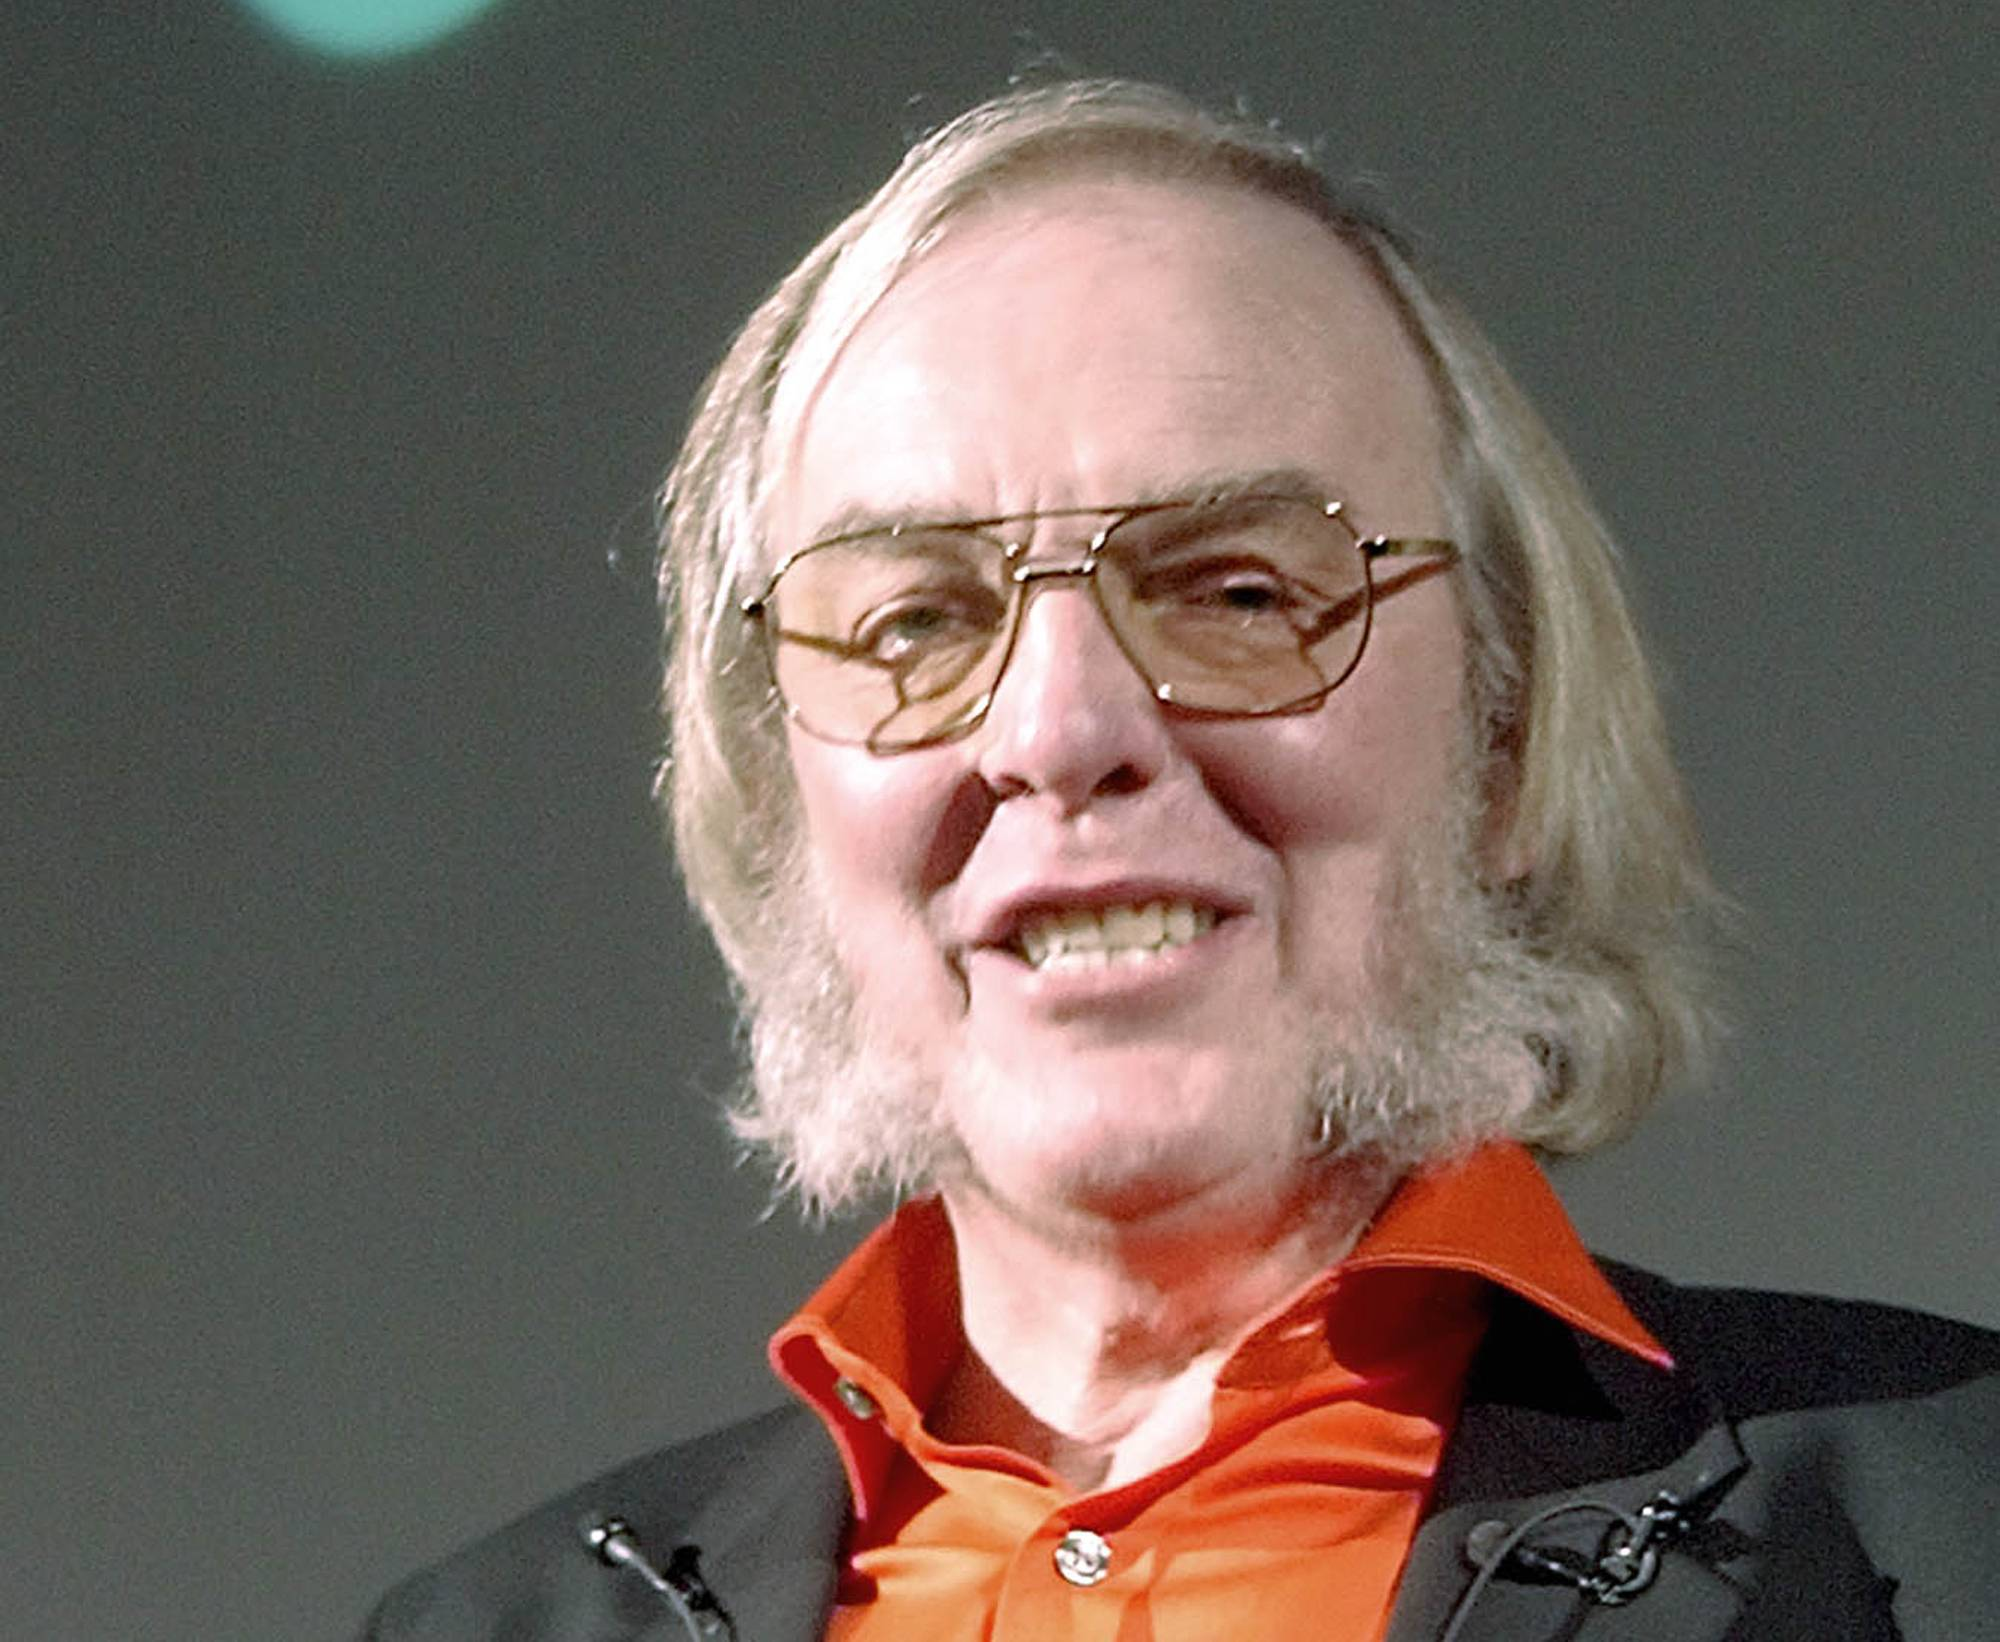 The Beagle2 spacecraft project's leading scientist, Professor Colin Pillinger, in London.